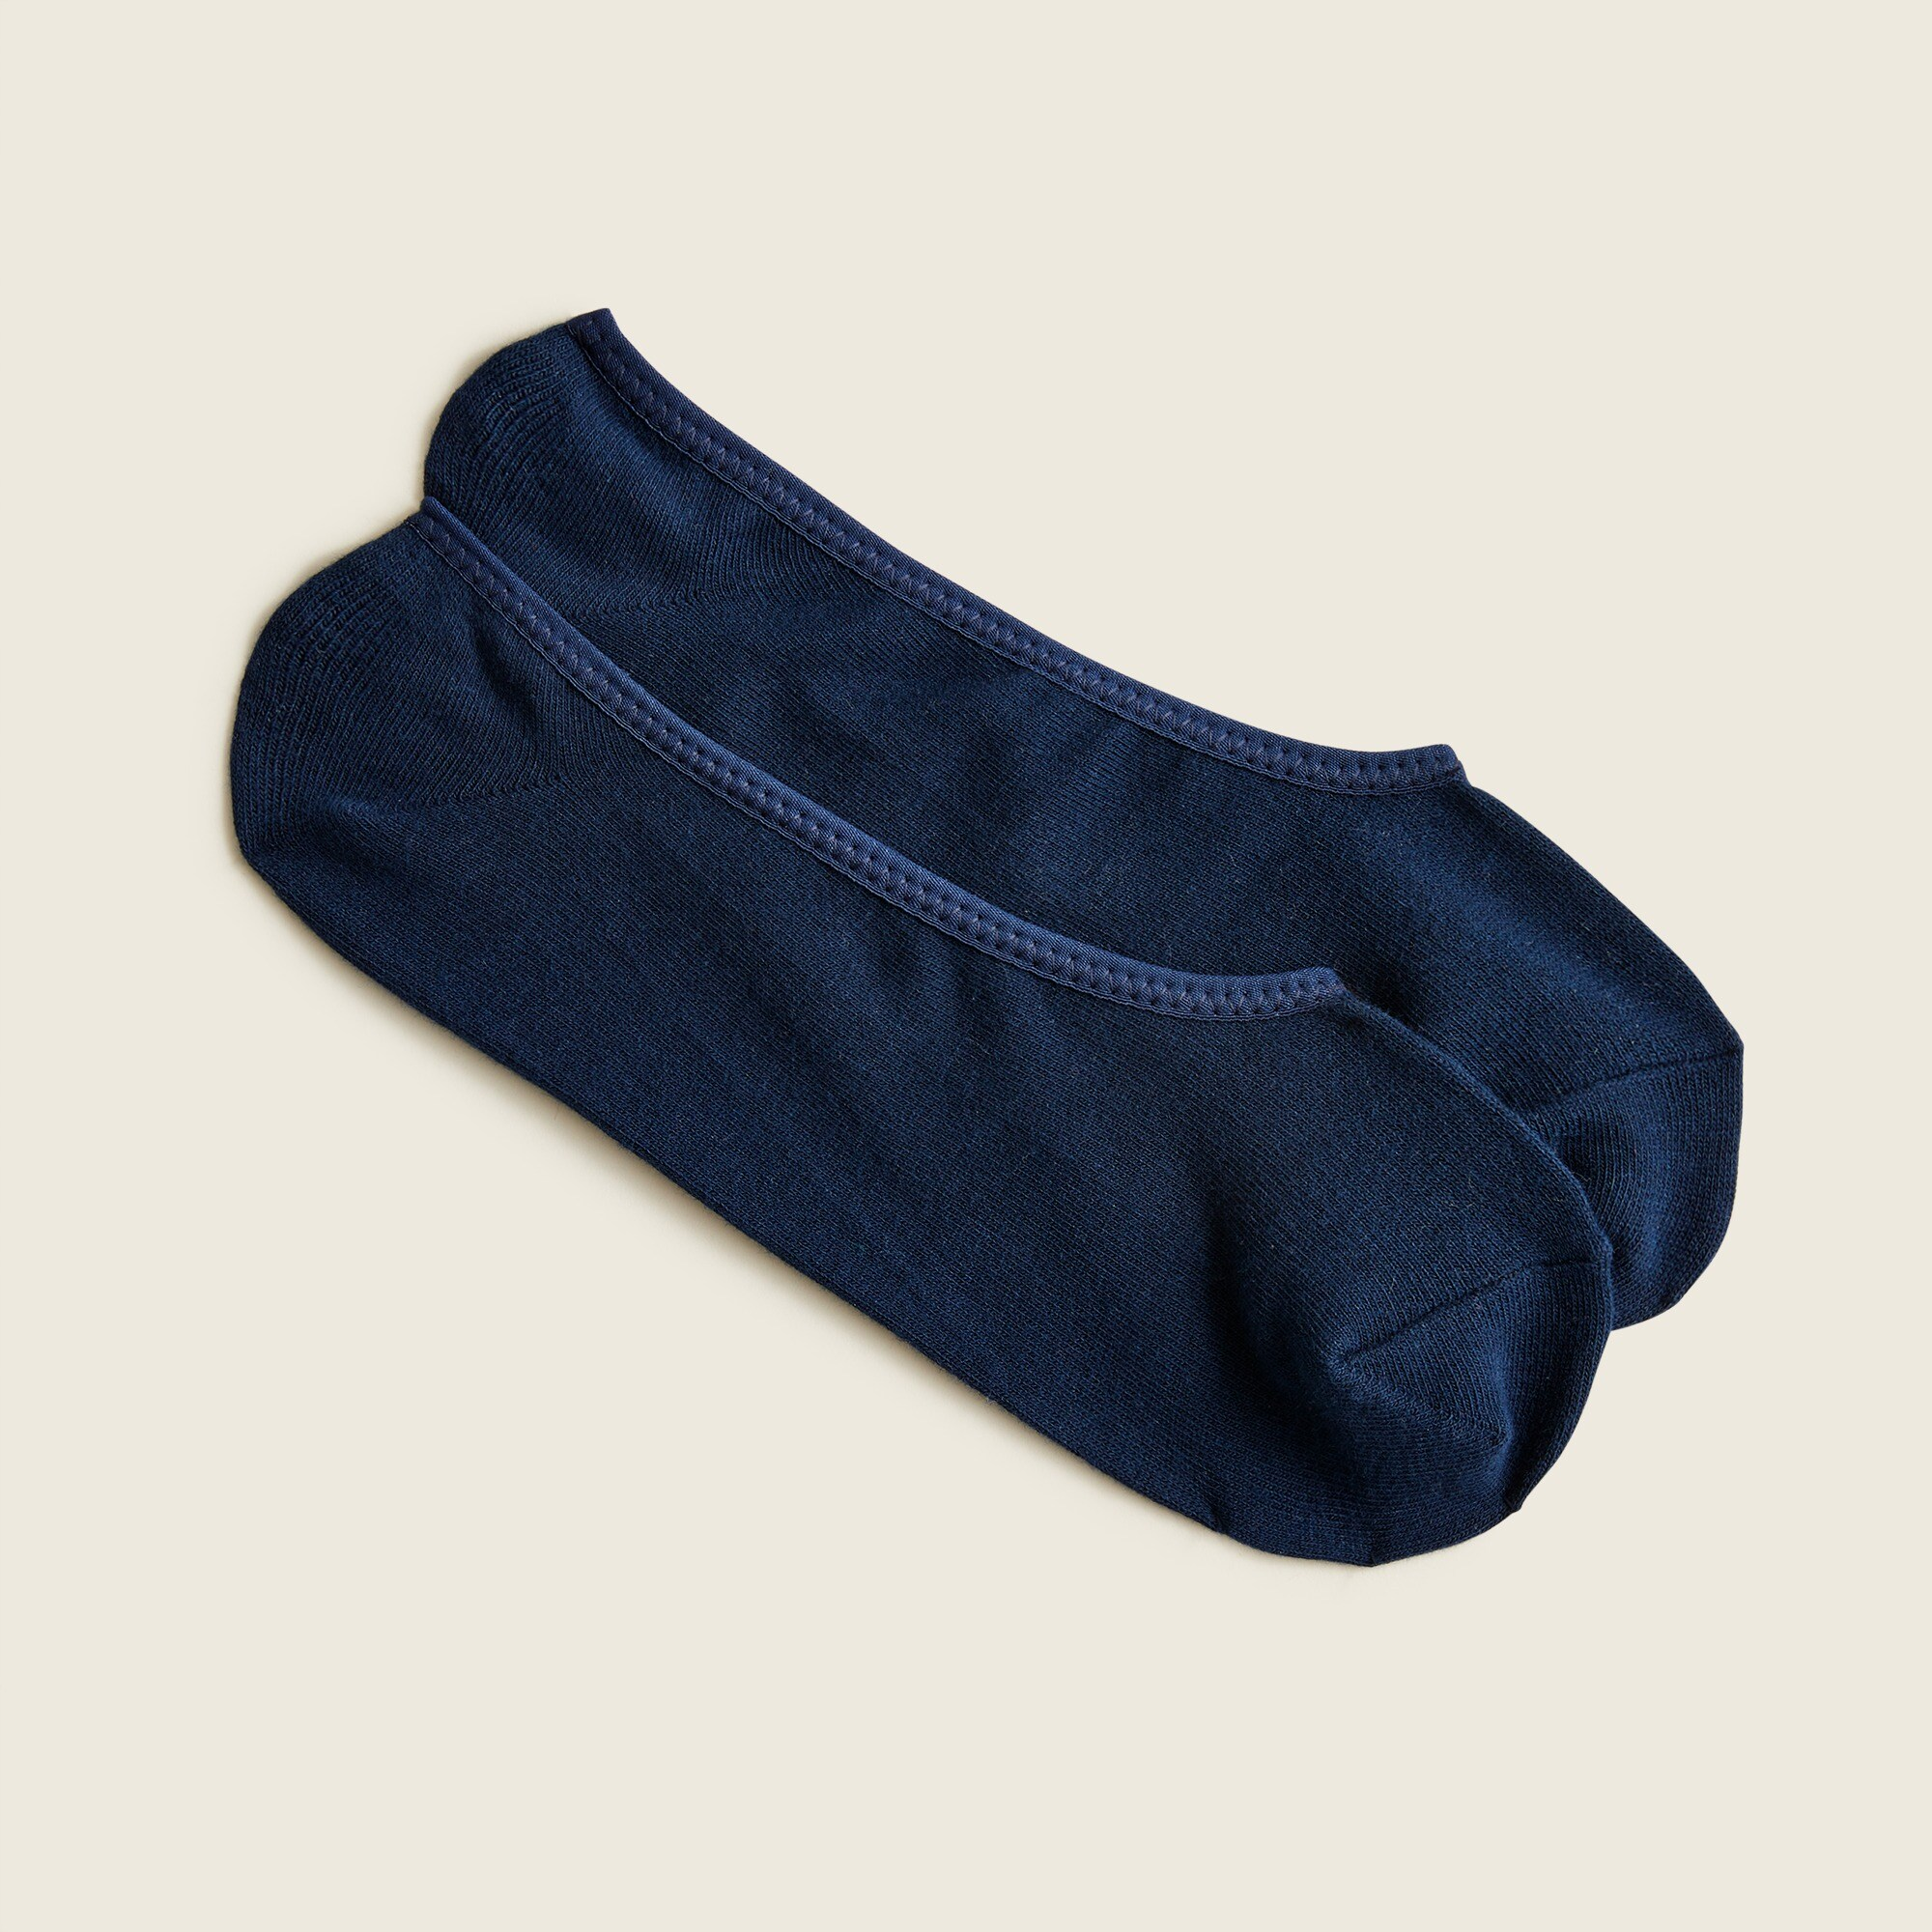 men's performance no-show socks - men's accessories